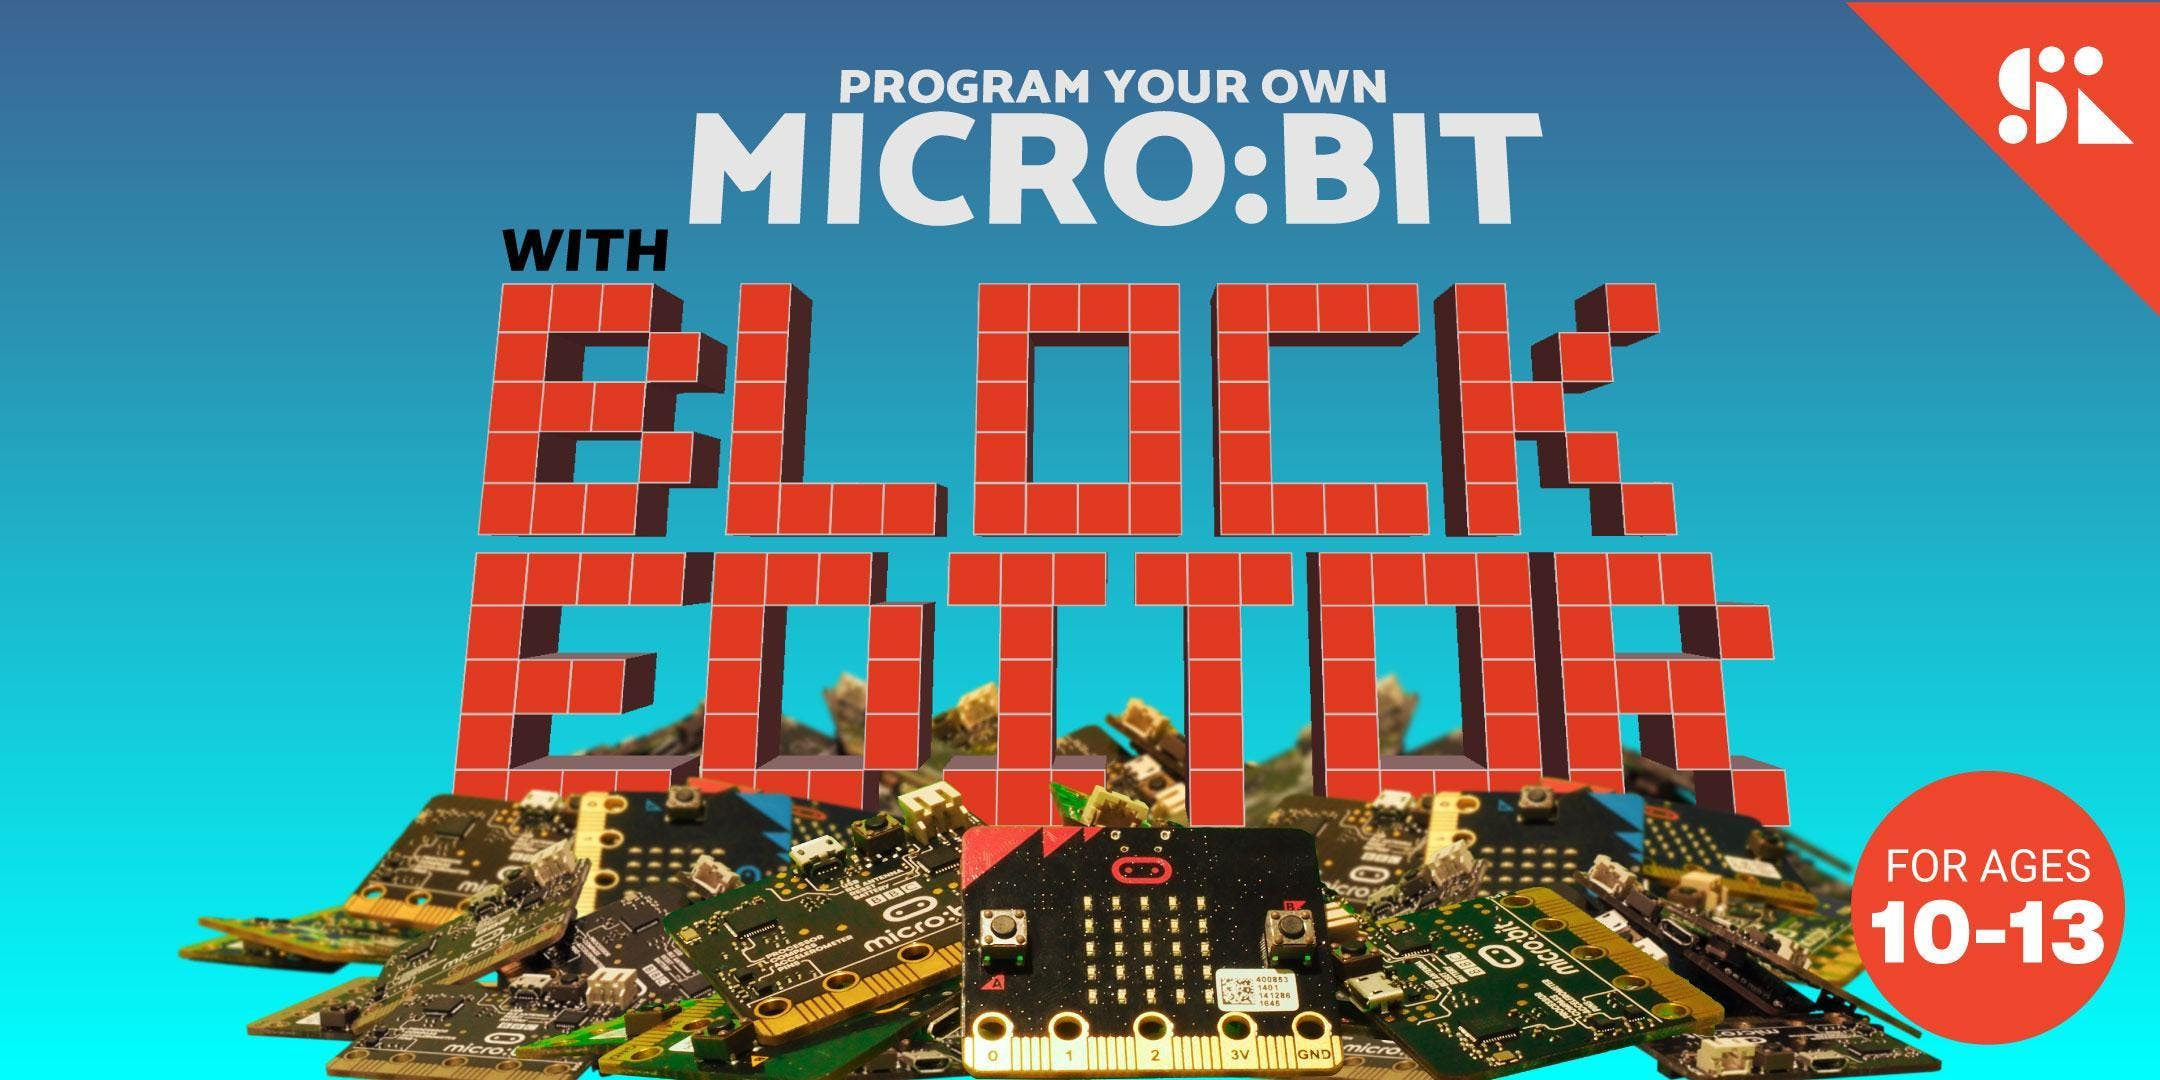 Code & Invent with Microbit Block Editor [Ages 10-13] 18 Jun - 22 Jun Holiday Camp (145PM)  Thomson